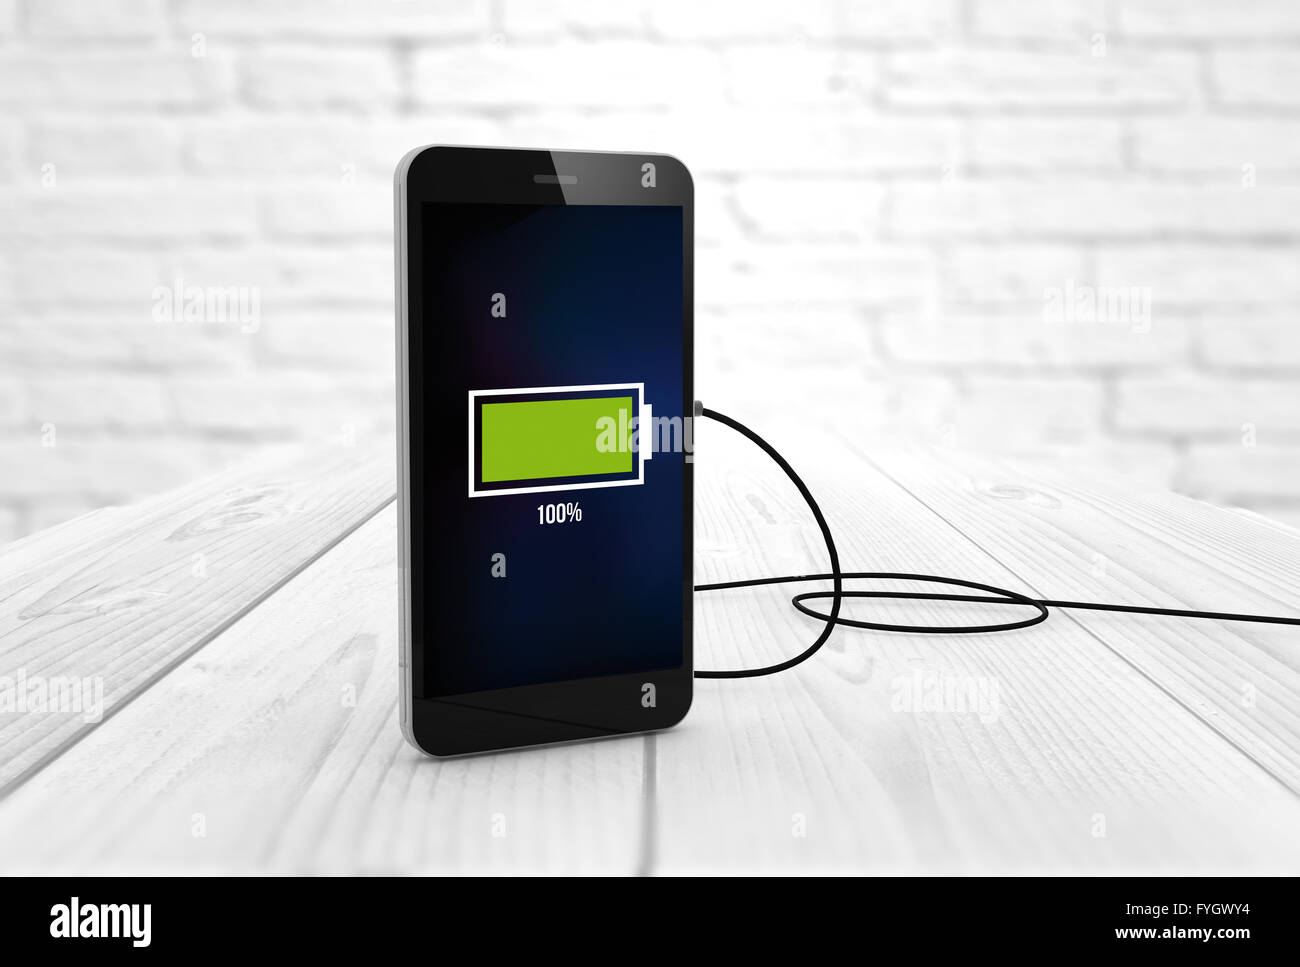 Phone charging digitally generated. All screen graphics are made up. - Stock Image